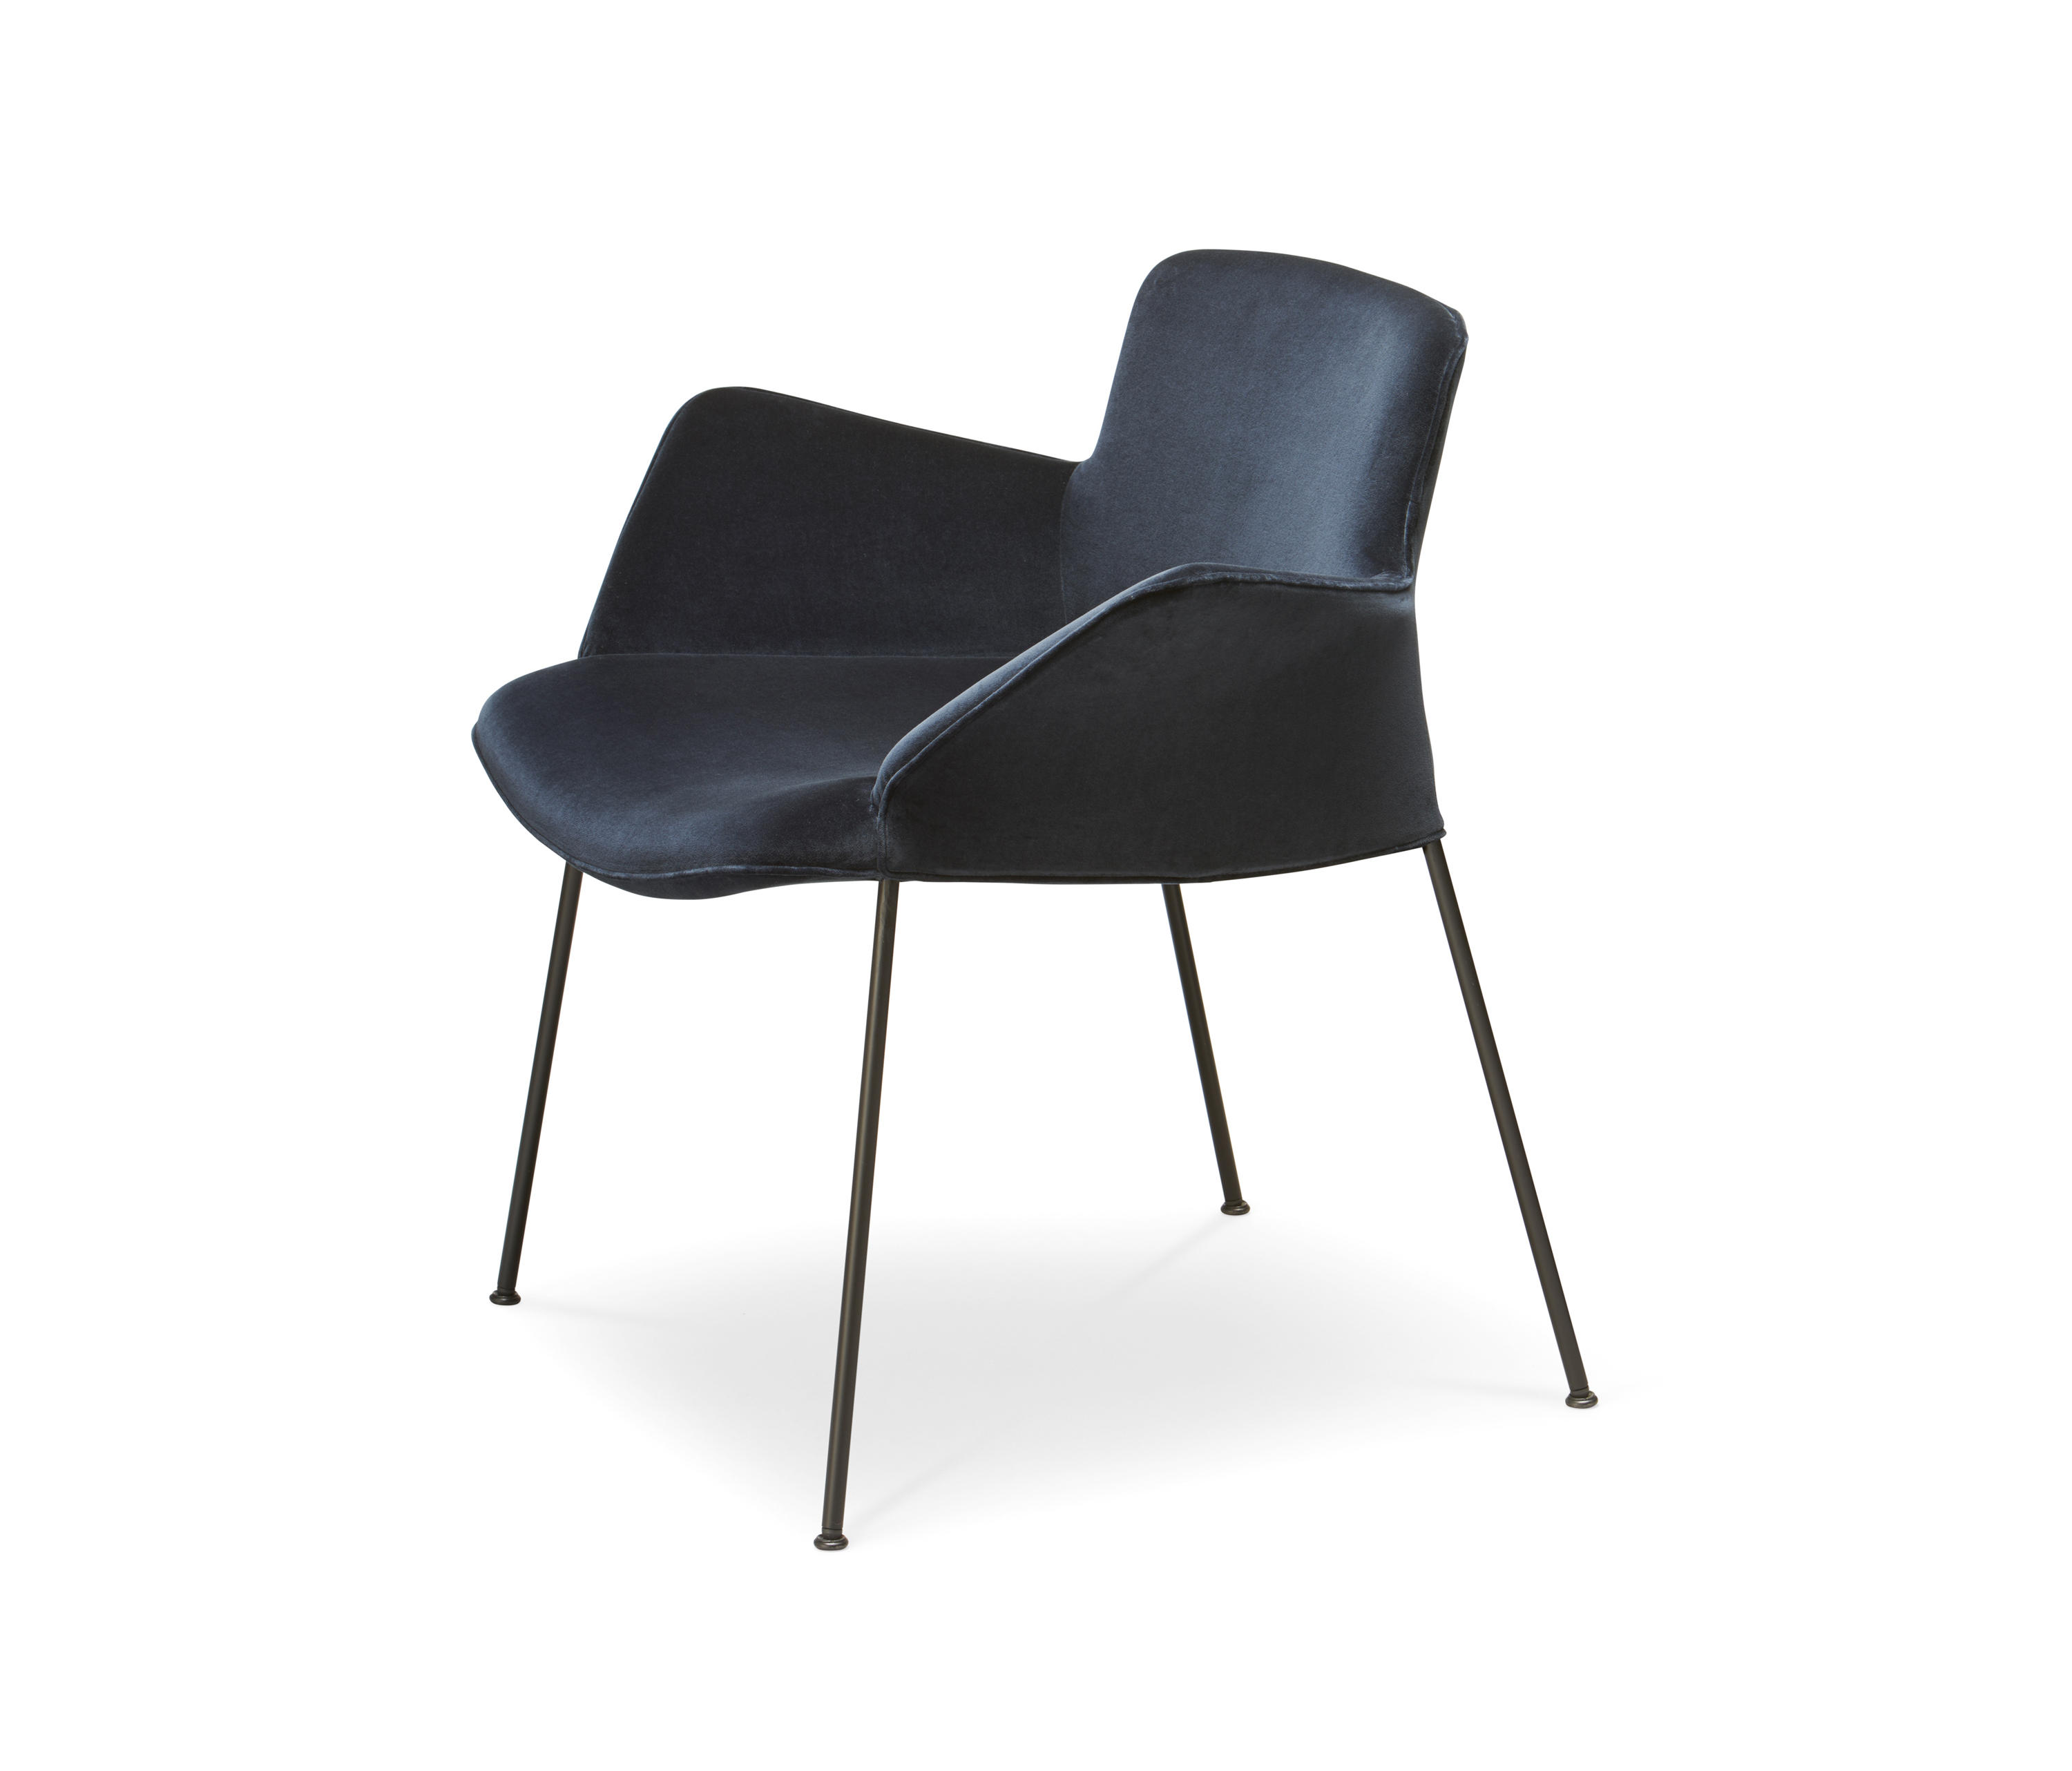 BURGAZ CHAIR - Chairs from Walter Knoll   Architonic